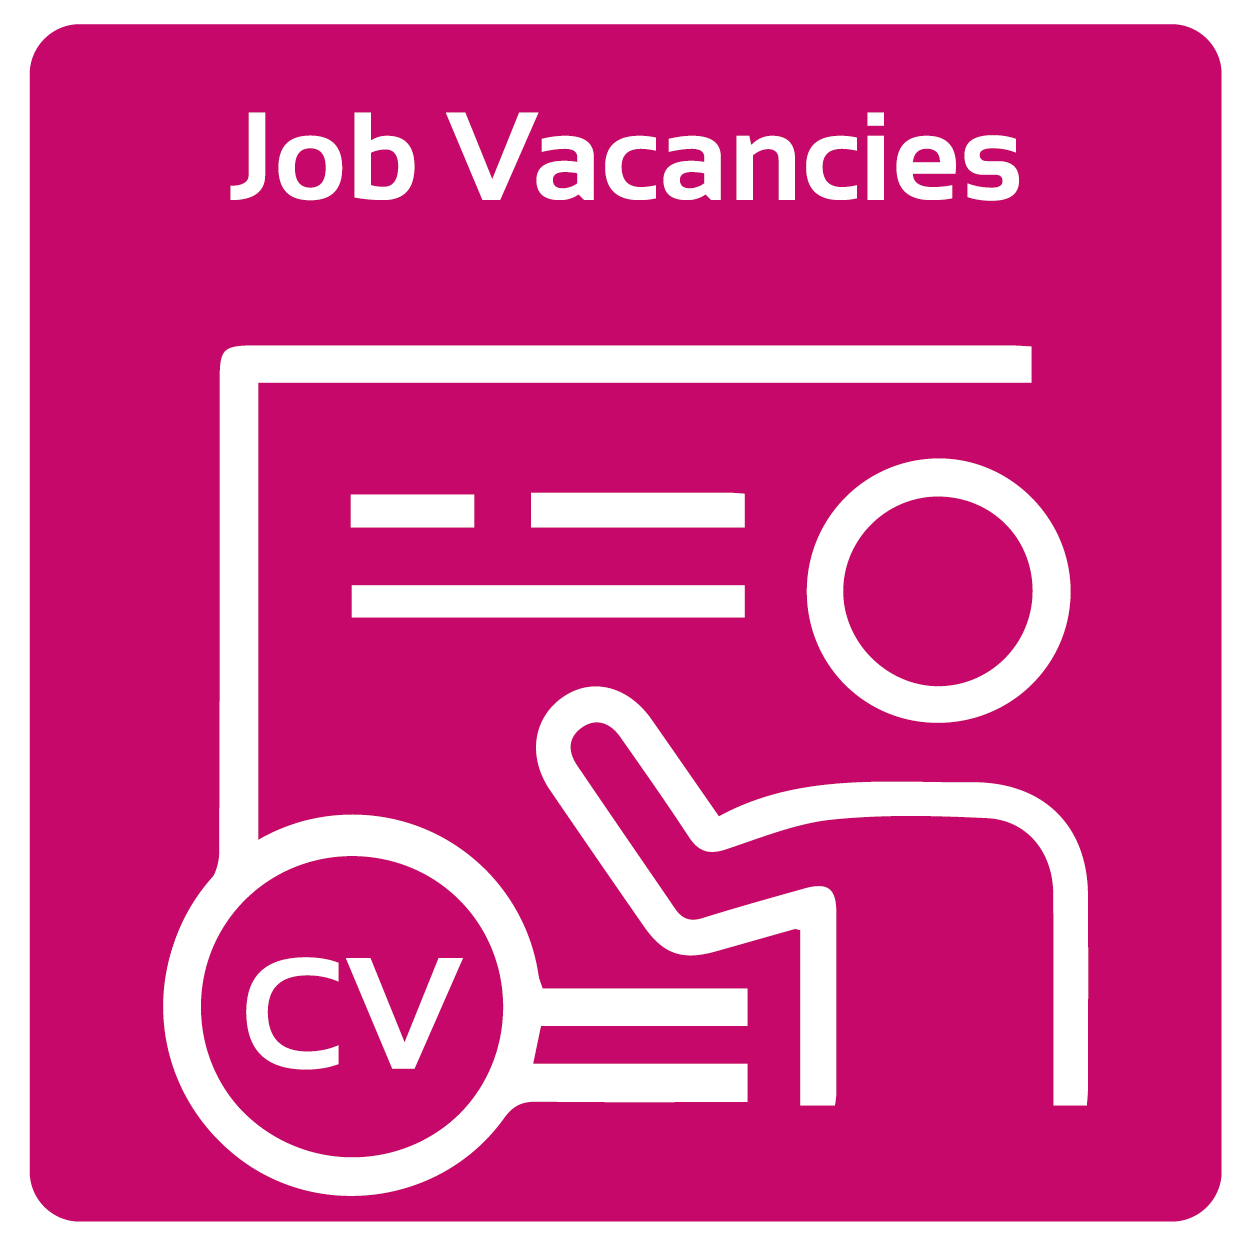 This image link will take you to our current job vacancies